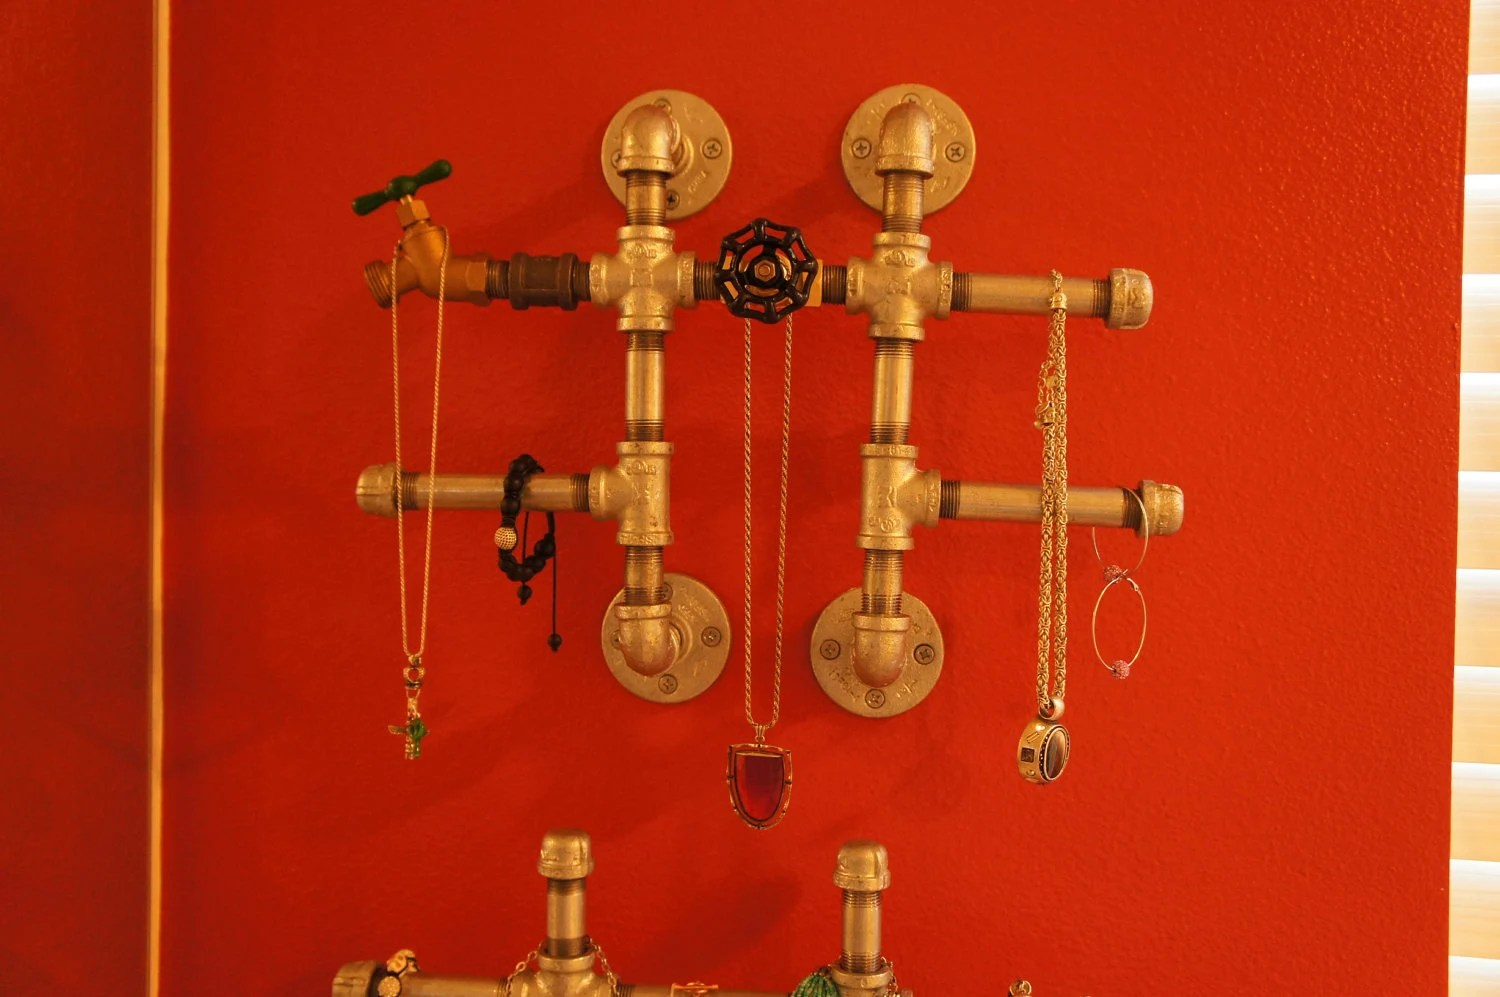 Galvanized Iron & Brass Valve Wall Hanging Industrial Jewelry Display